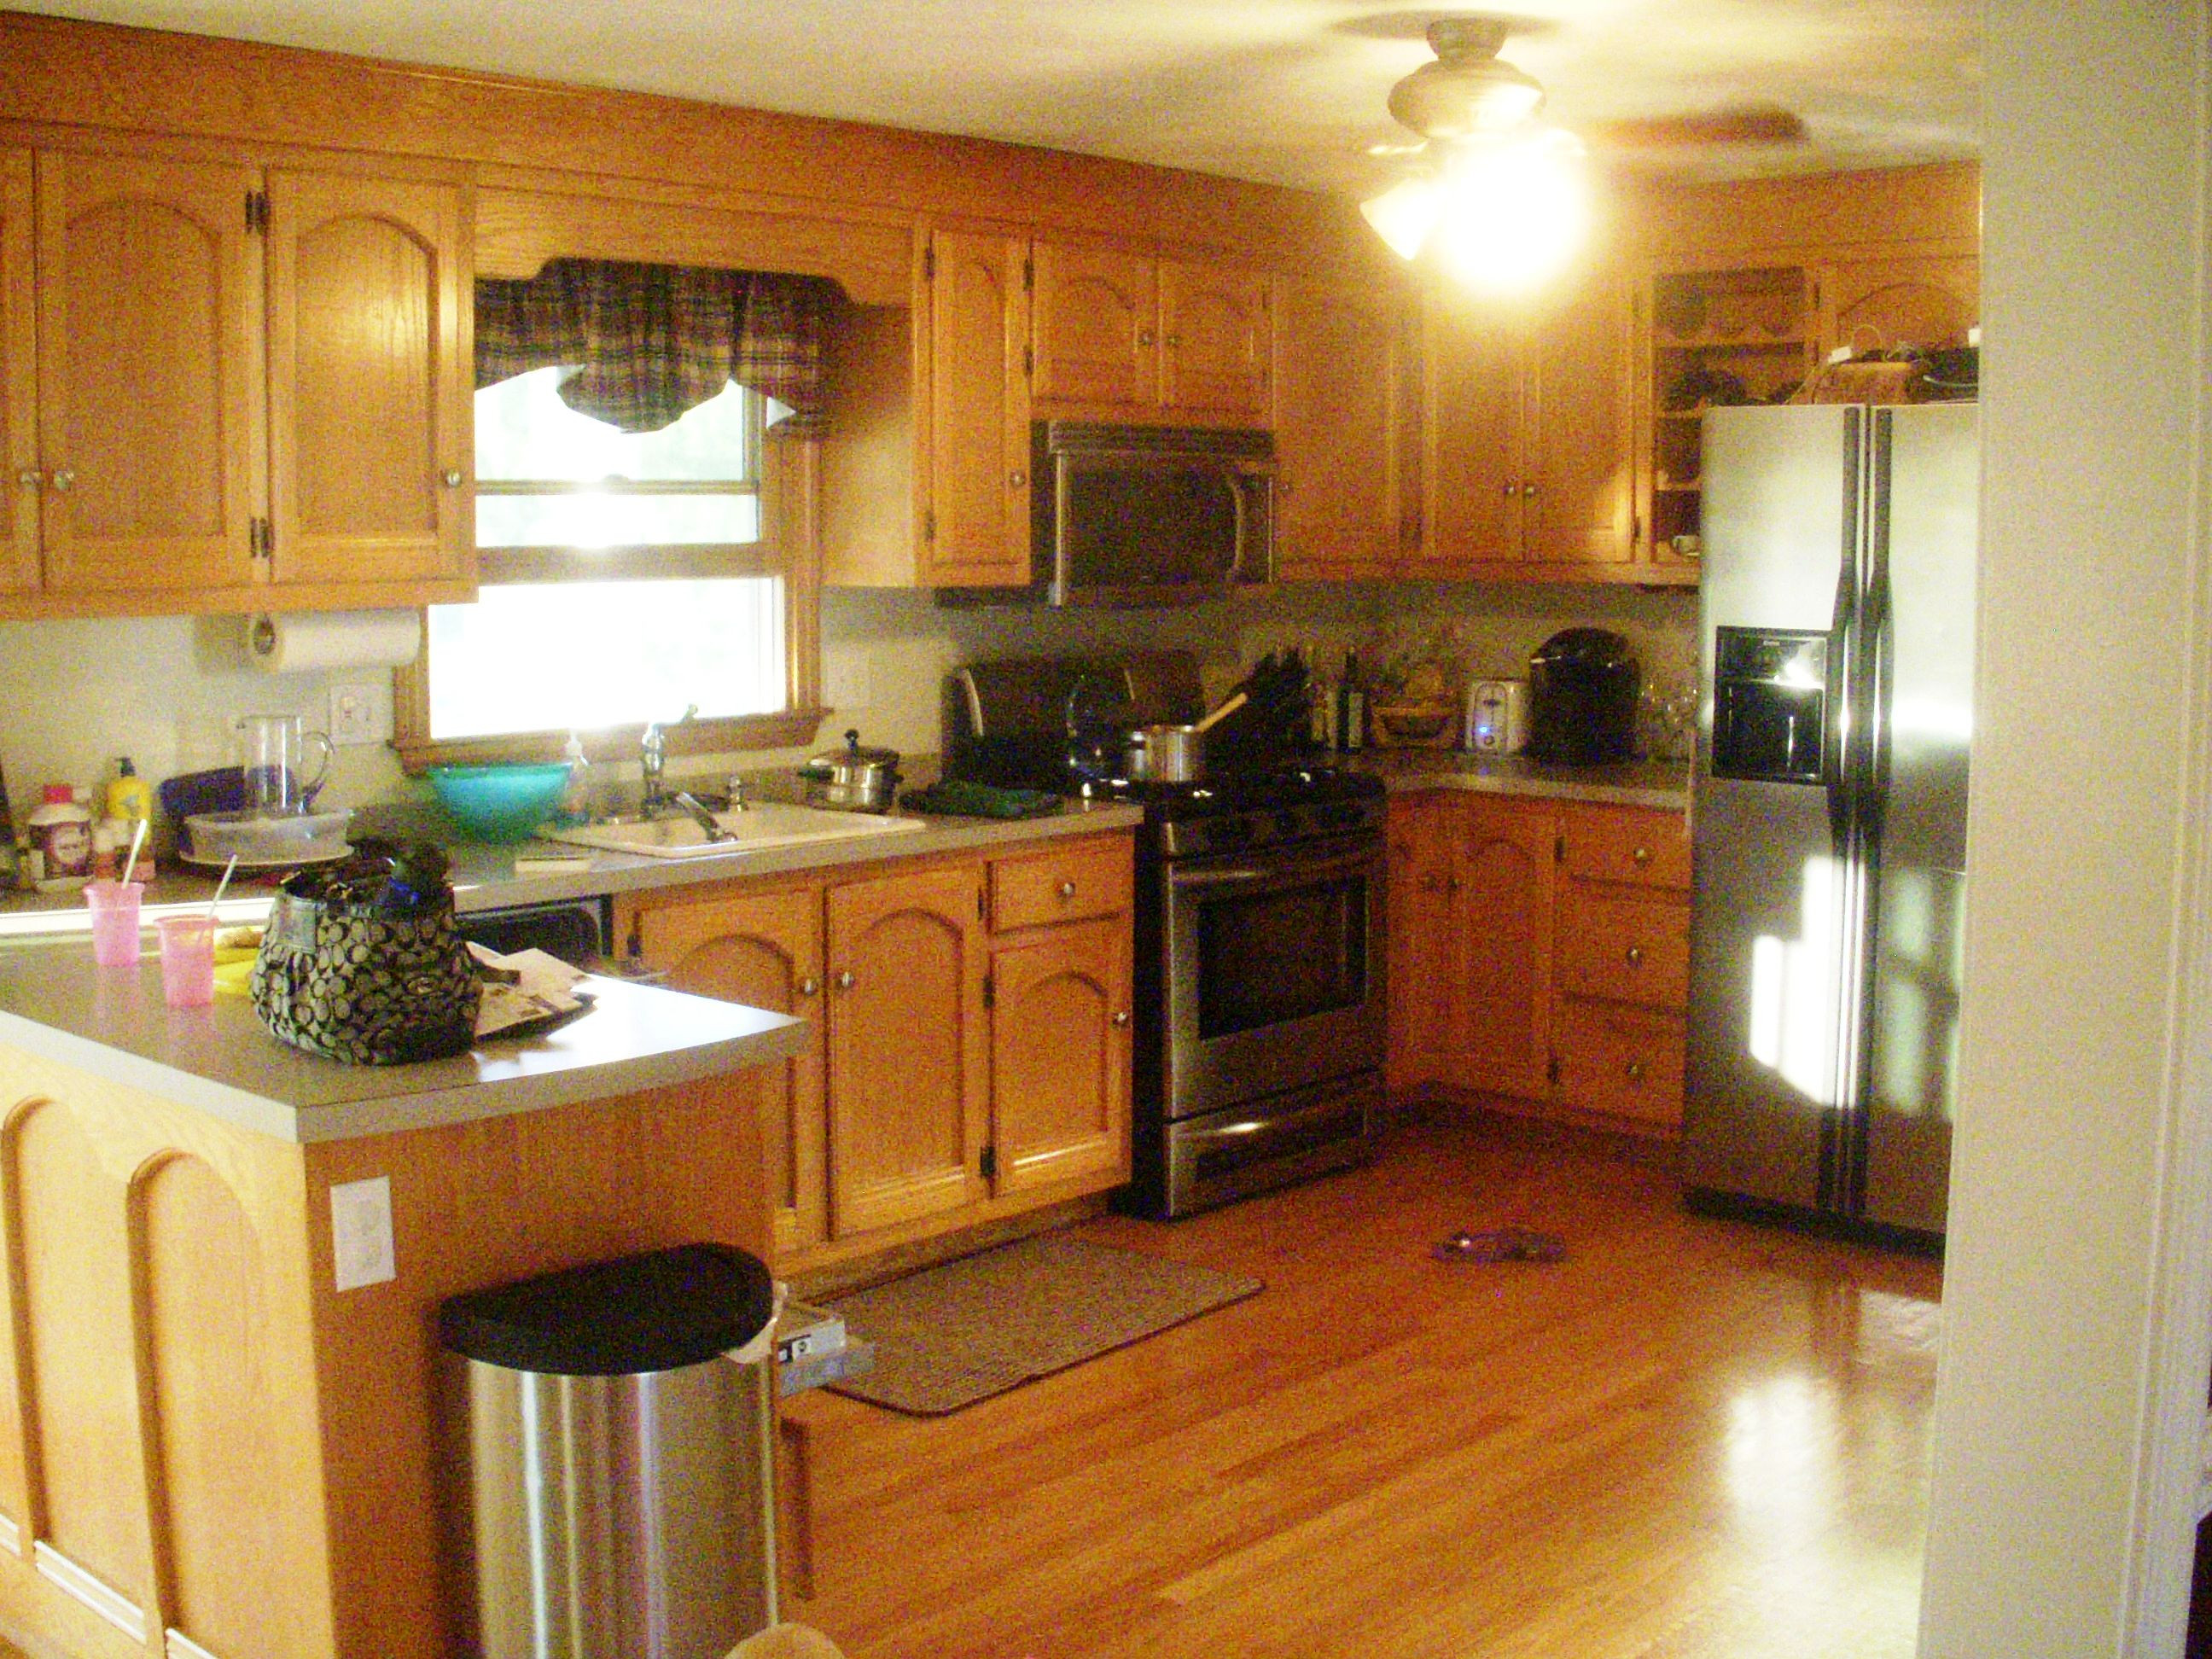 Kitchen Remodeling Before And After Kitchen Remodel Before And After 1